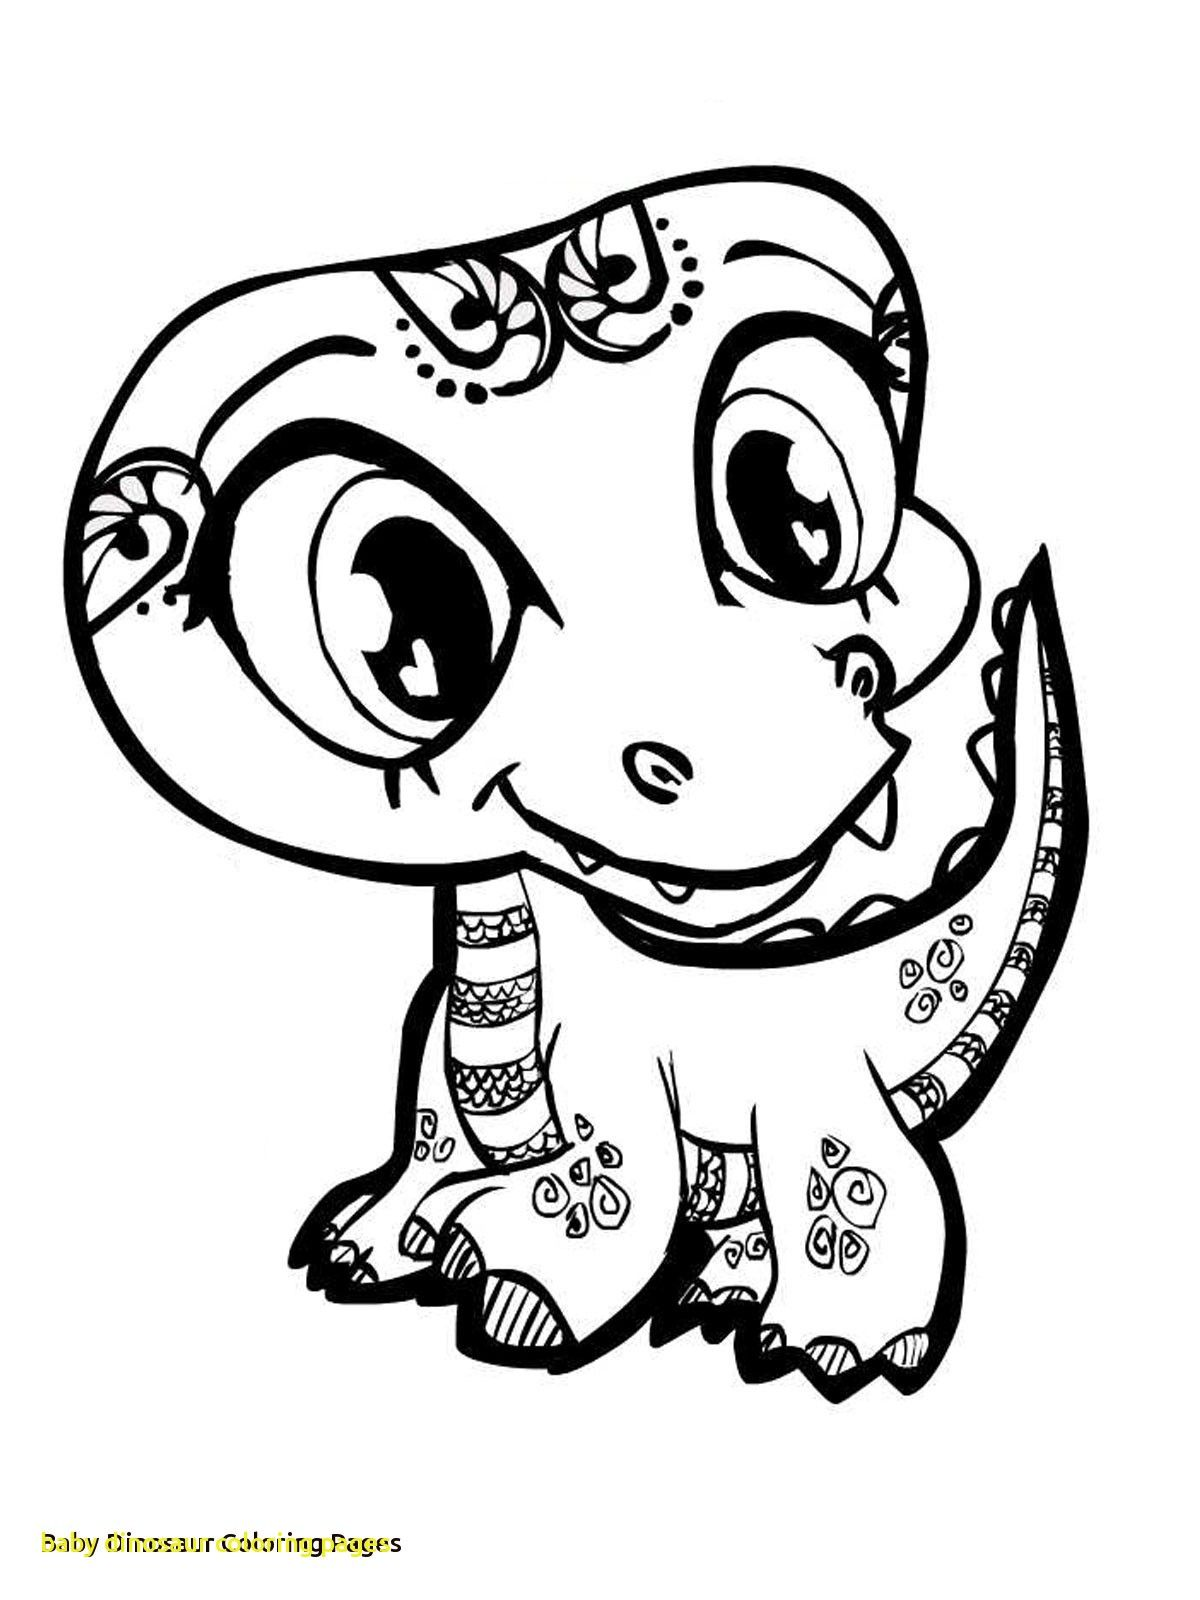 Baby Dinosaur Coloring Pages With Best Fresh Cute Dinosaur